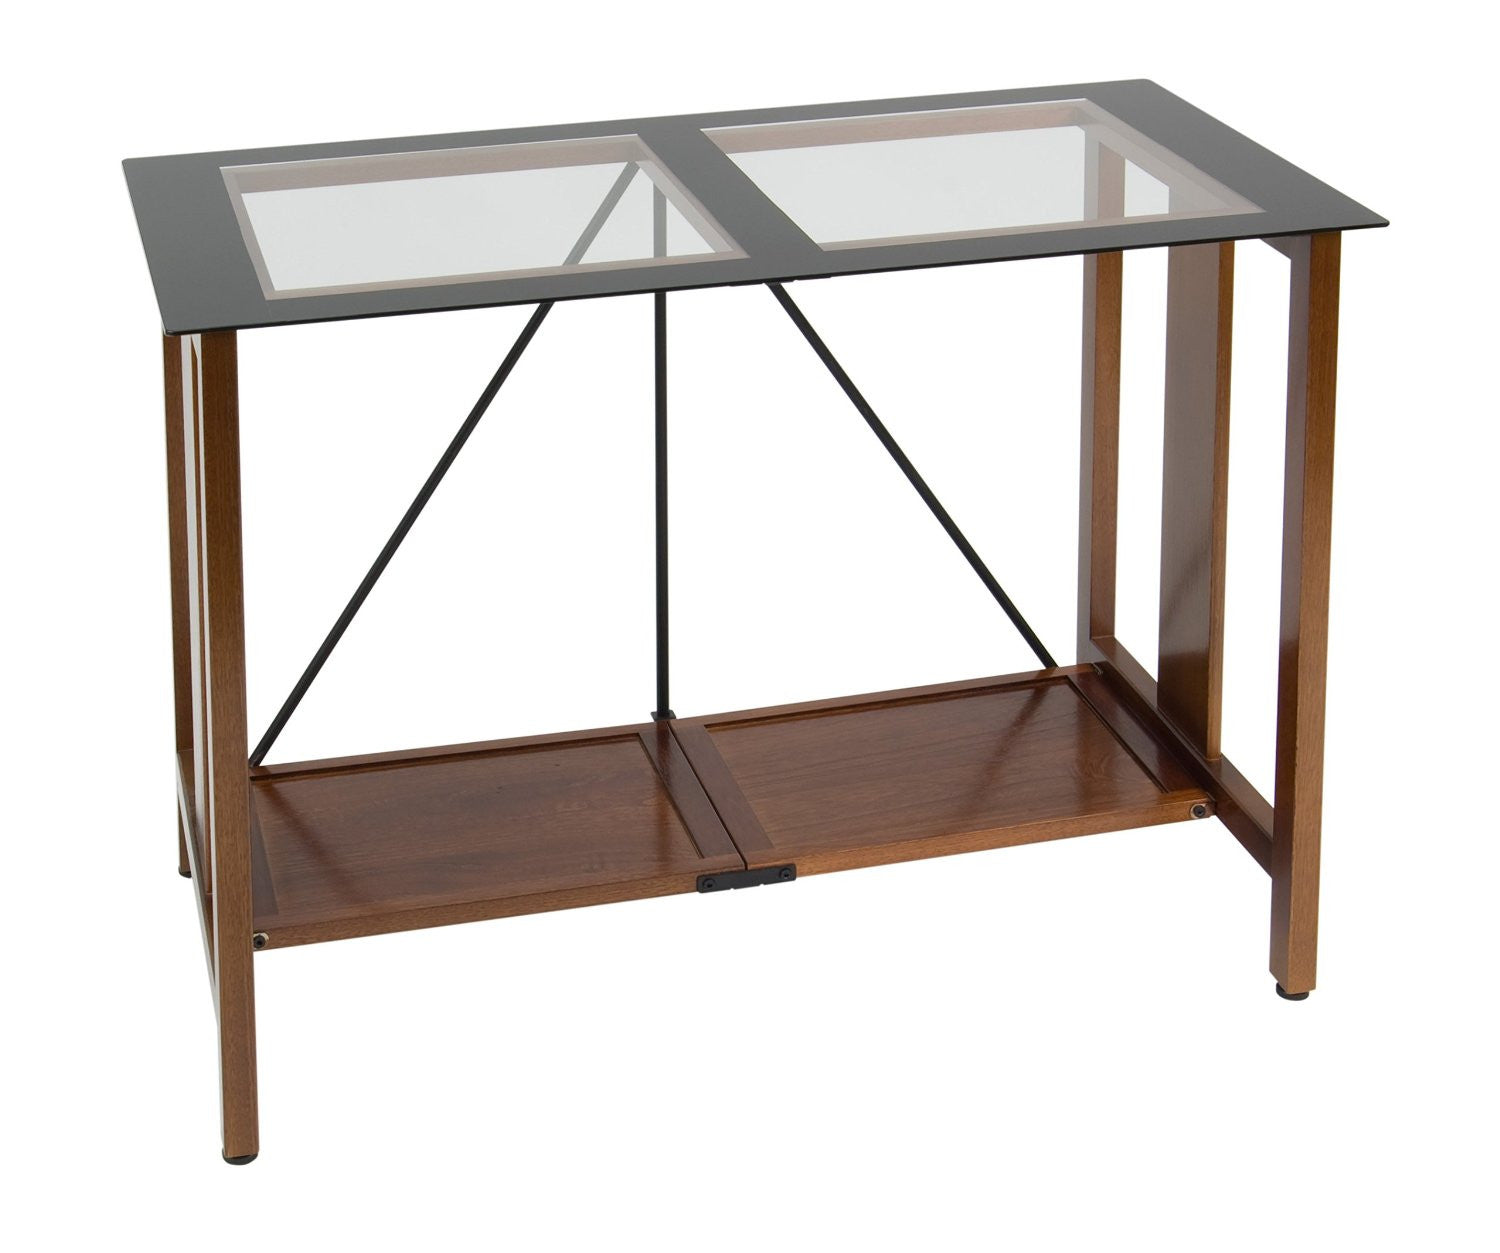 Studio Designs 50251 Madera Folding Desk (Glass Top) Walnut / Black/ Clear Glass